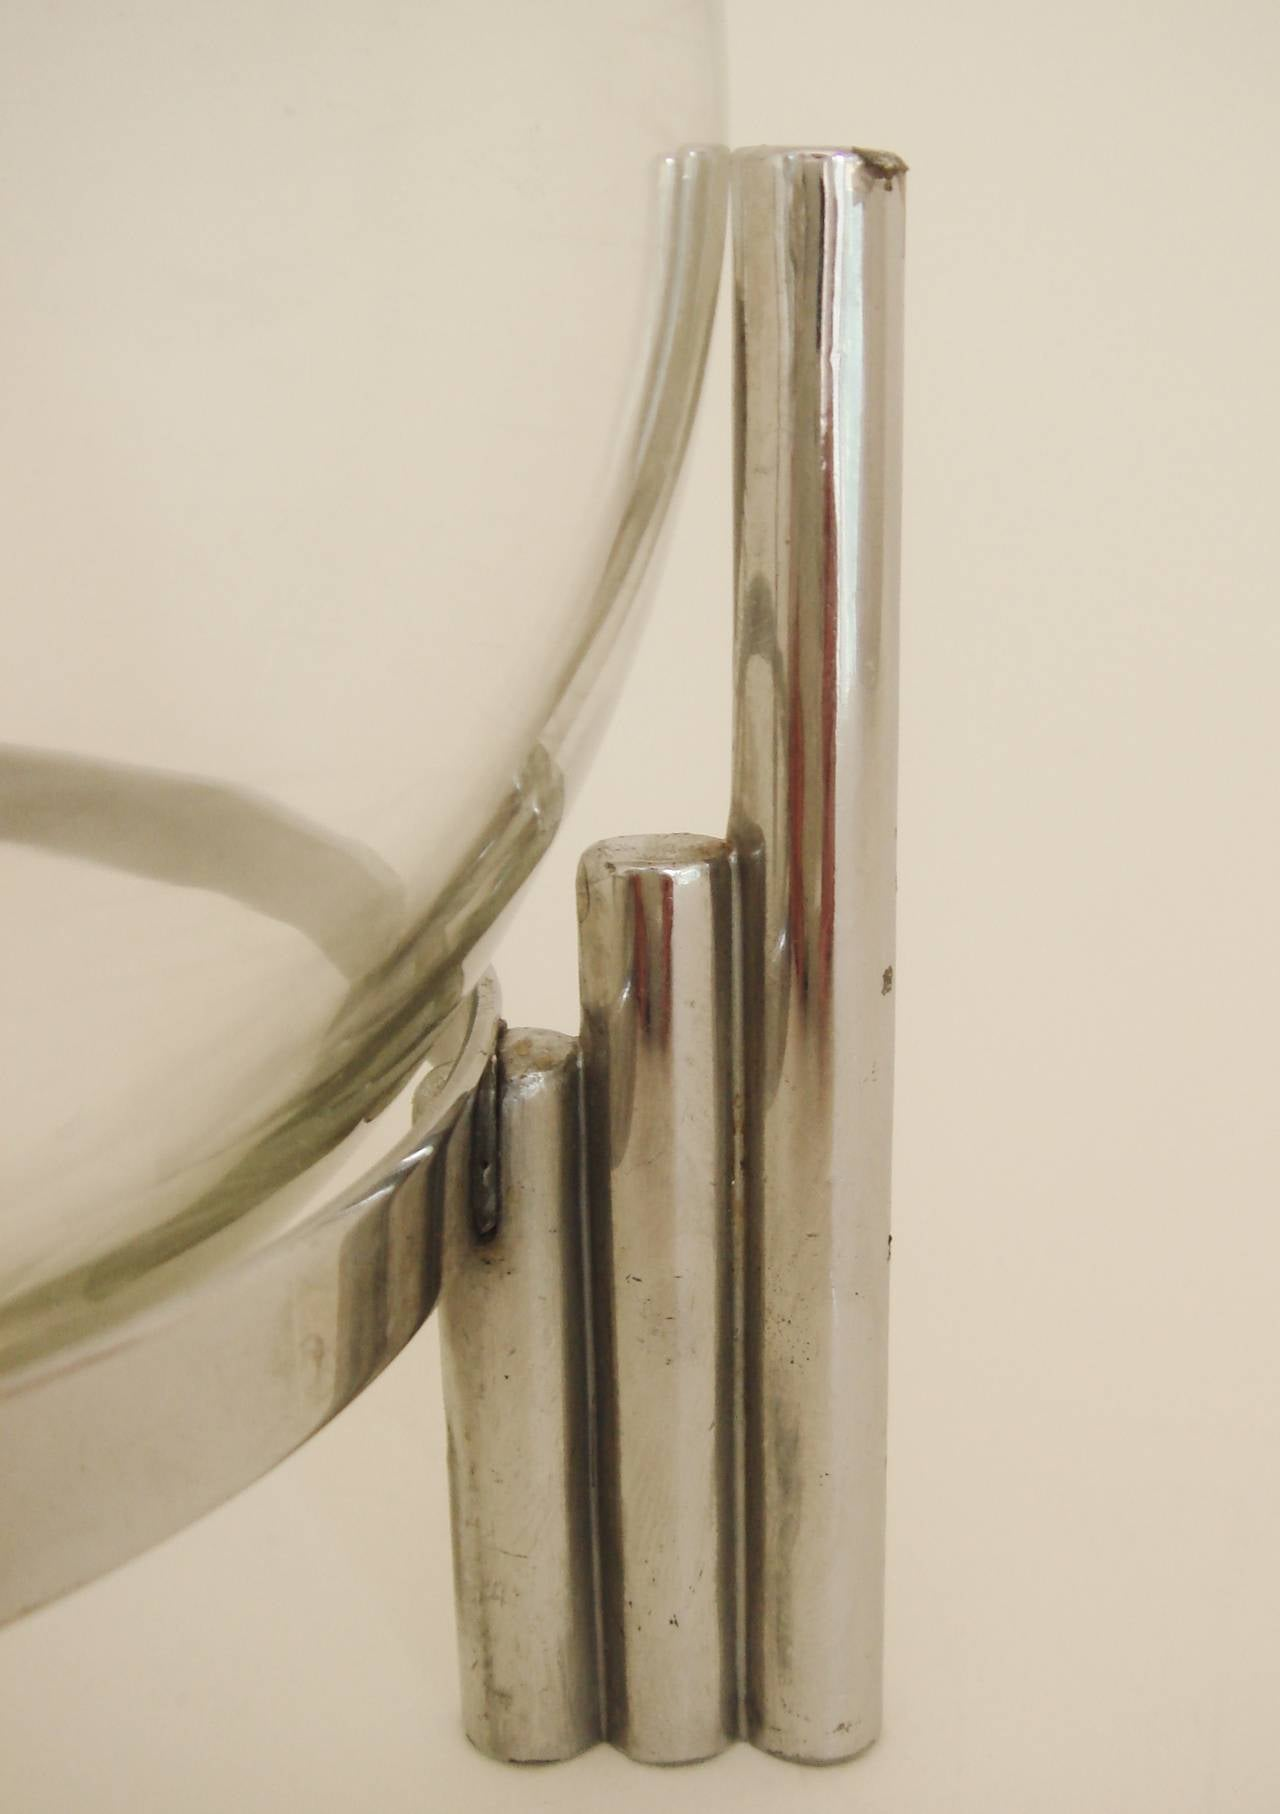 American Art Deco Chrome, Indestructo Plate and Glass Rose Bowl by Benedict In Good Condition For Sale In Port Hope, ON